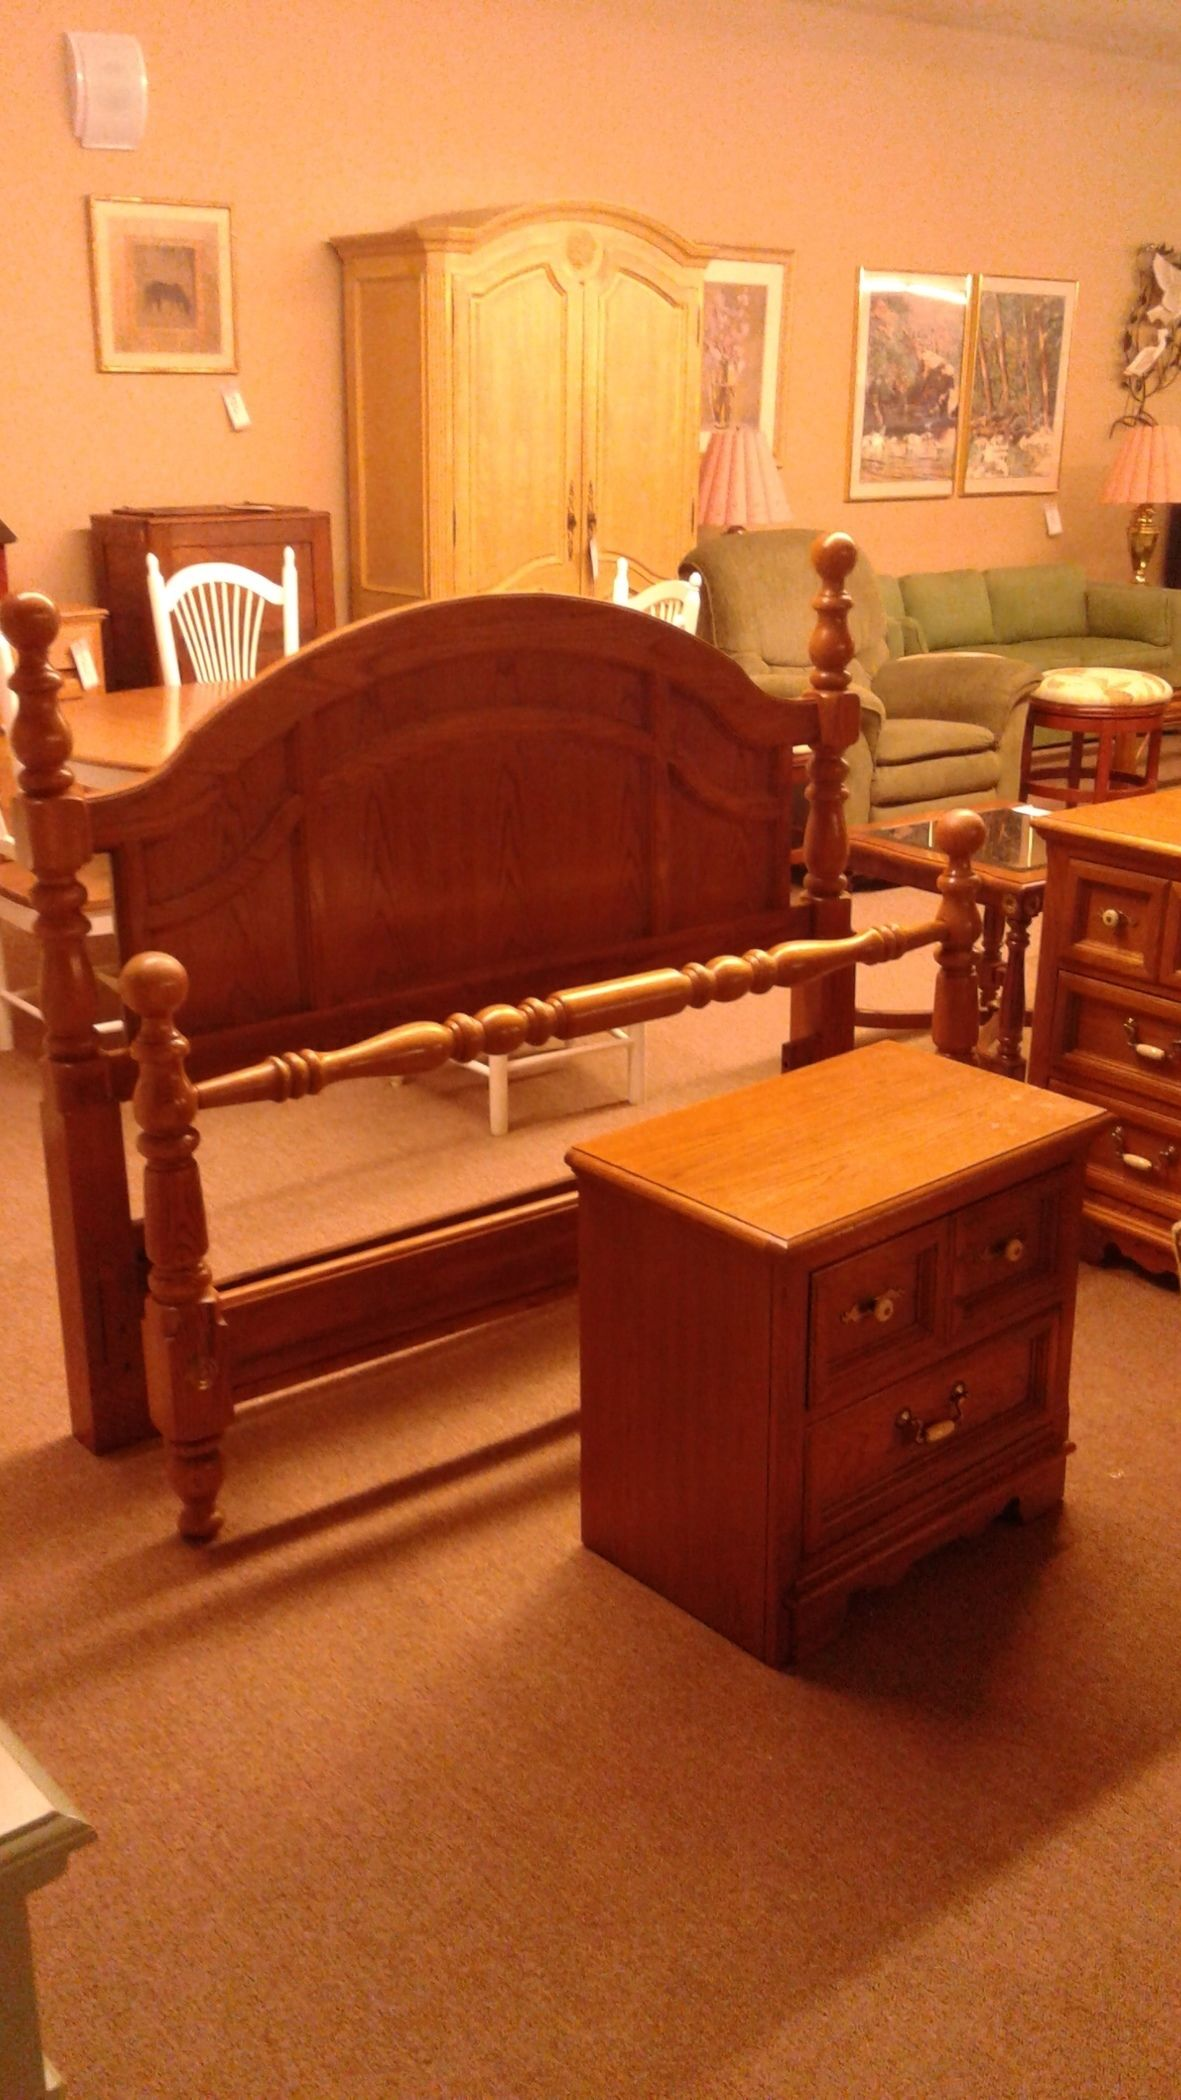 Thomasville Queen Bed Ntstd Delmarva Furniture Consignment